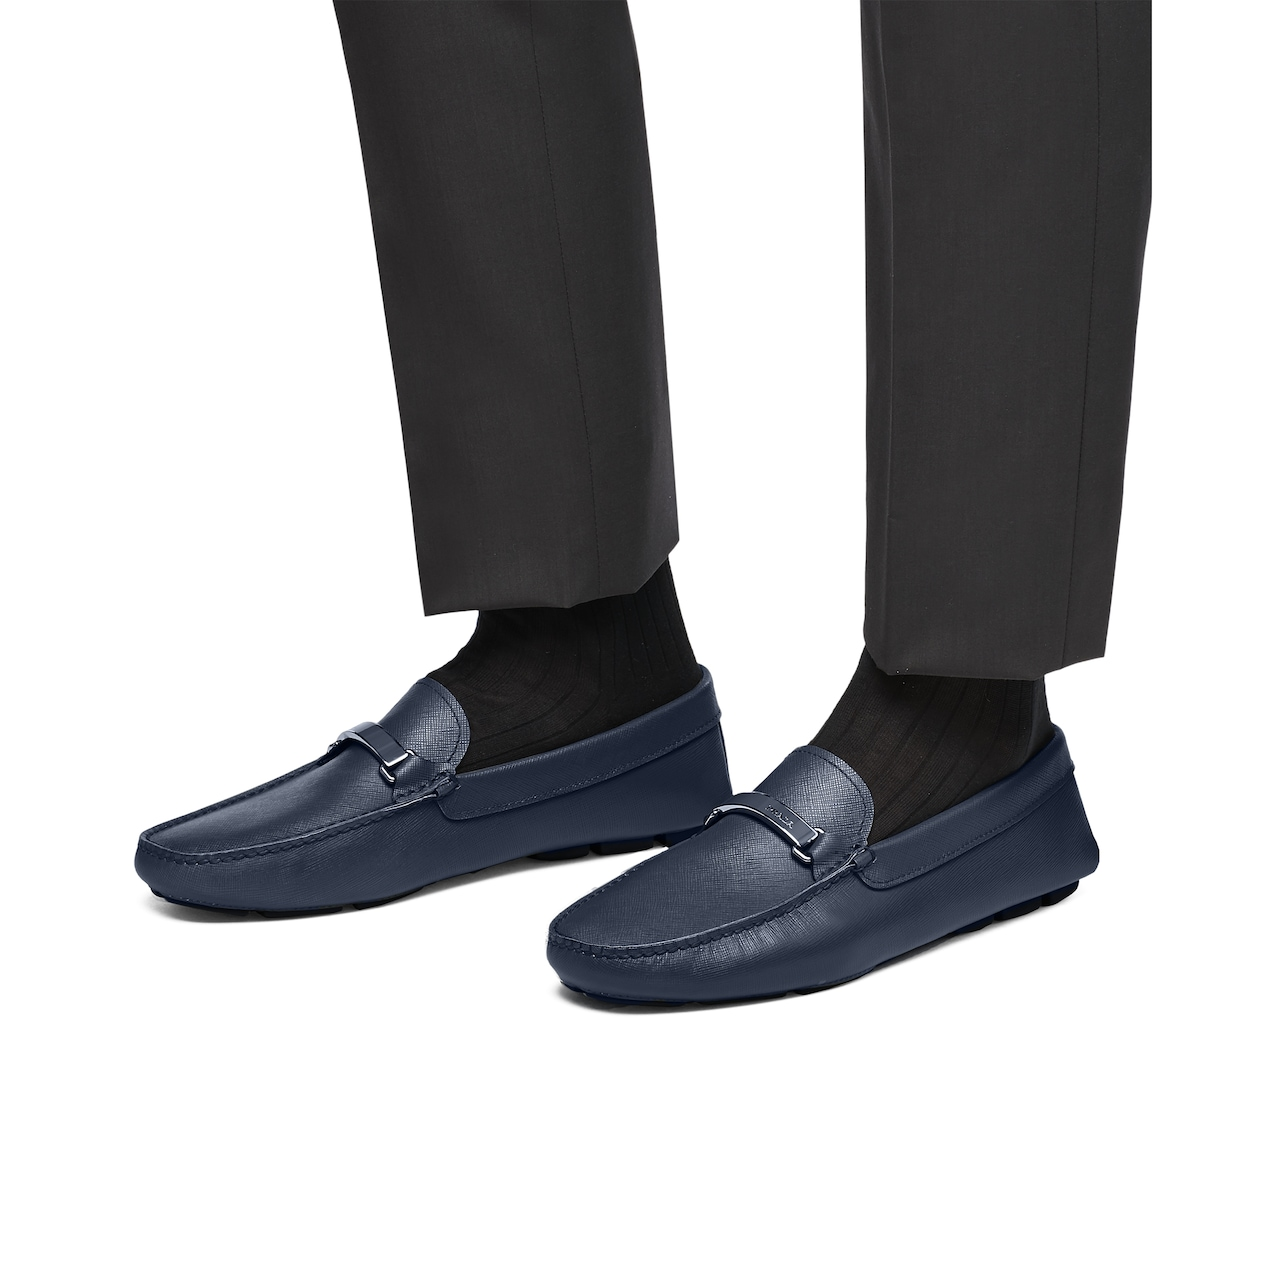 Saffiano leather loafers 3